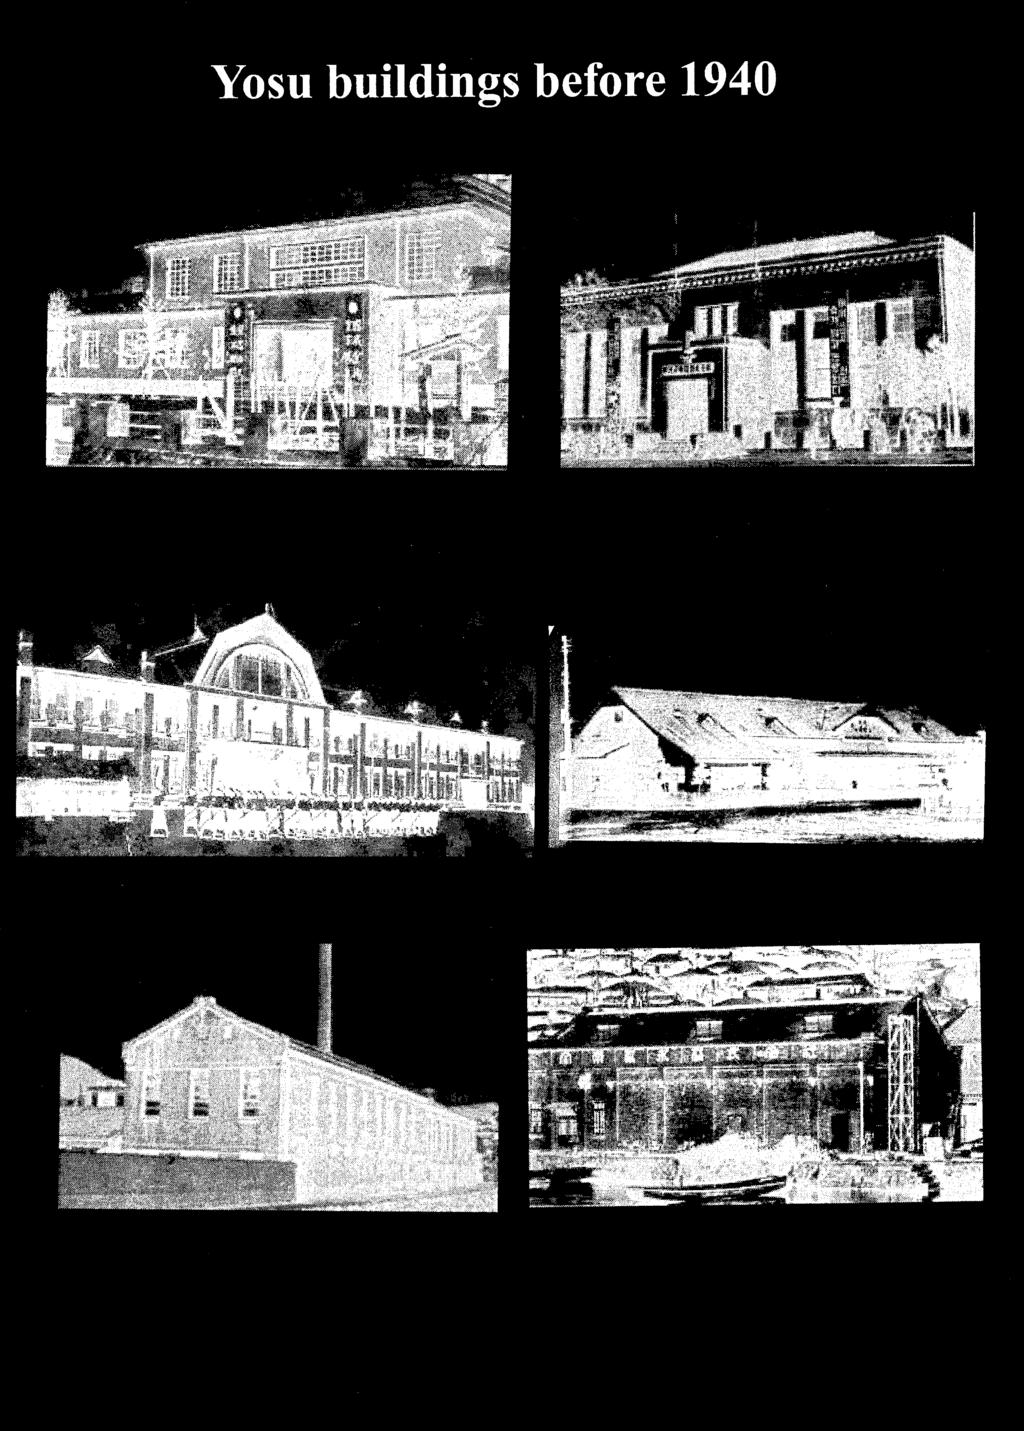 54 Chapter 1 Fig. 1a Some buildings in Yosu before 1940.